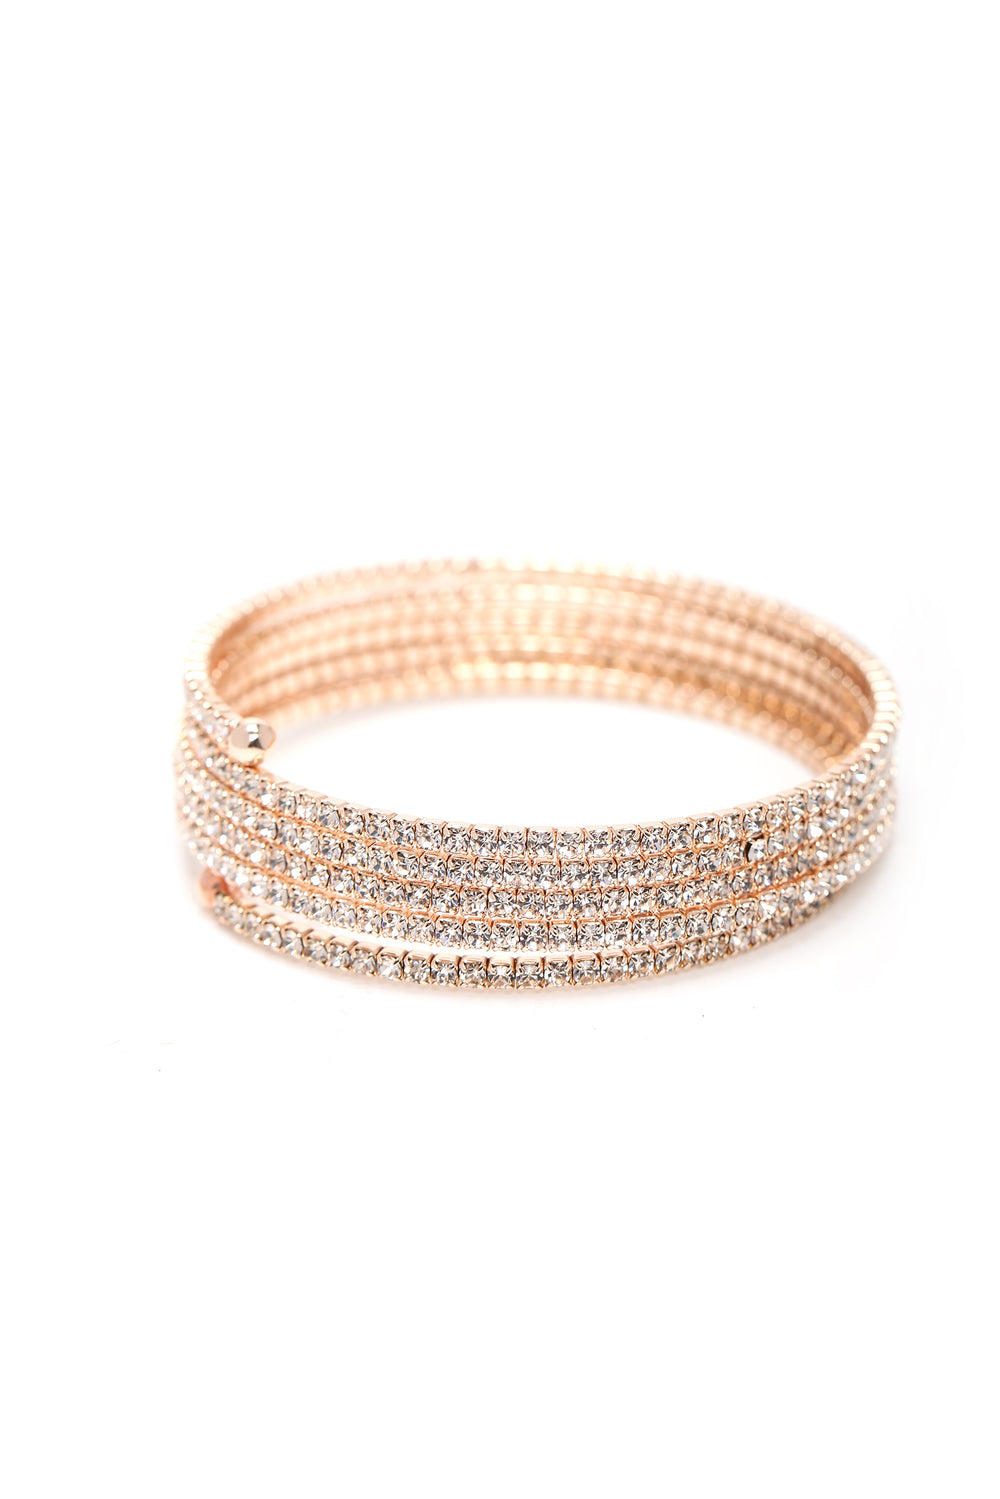 Round And Round Bracelet - Rose Gold